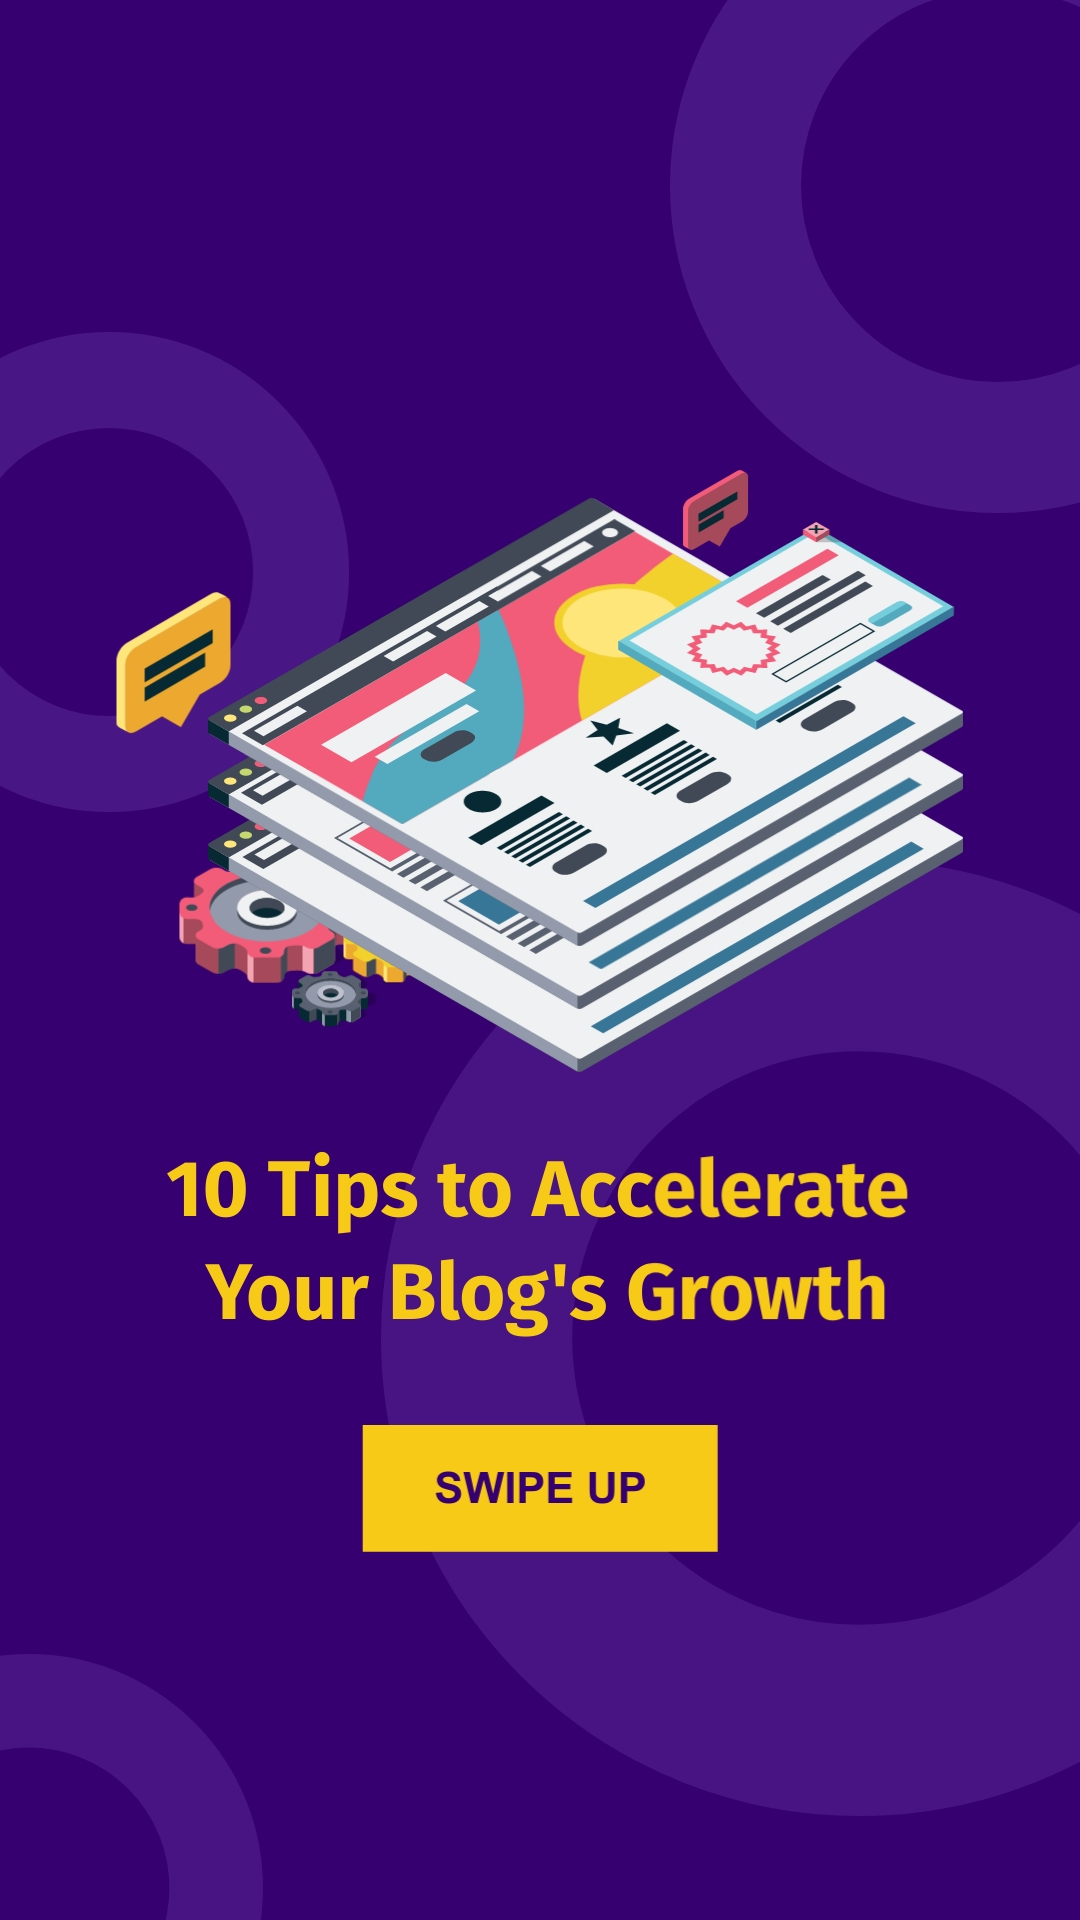 Accelerate Blog Growth Vertical Template